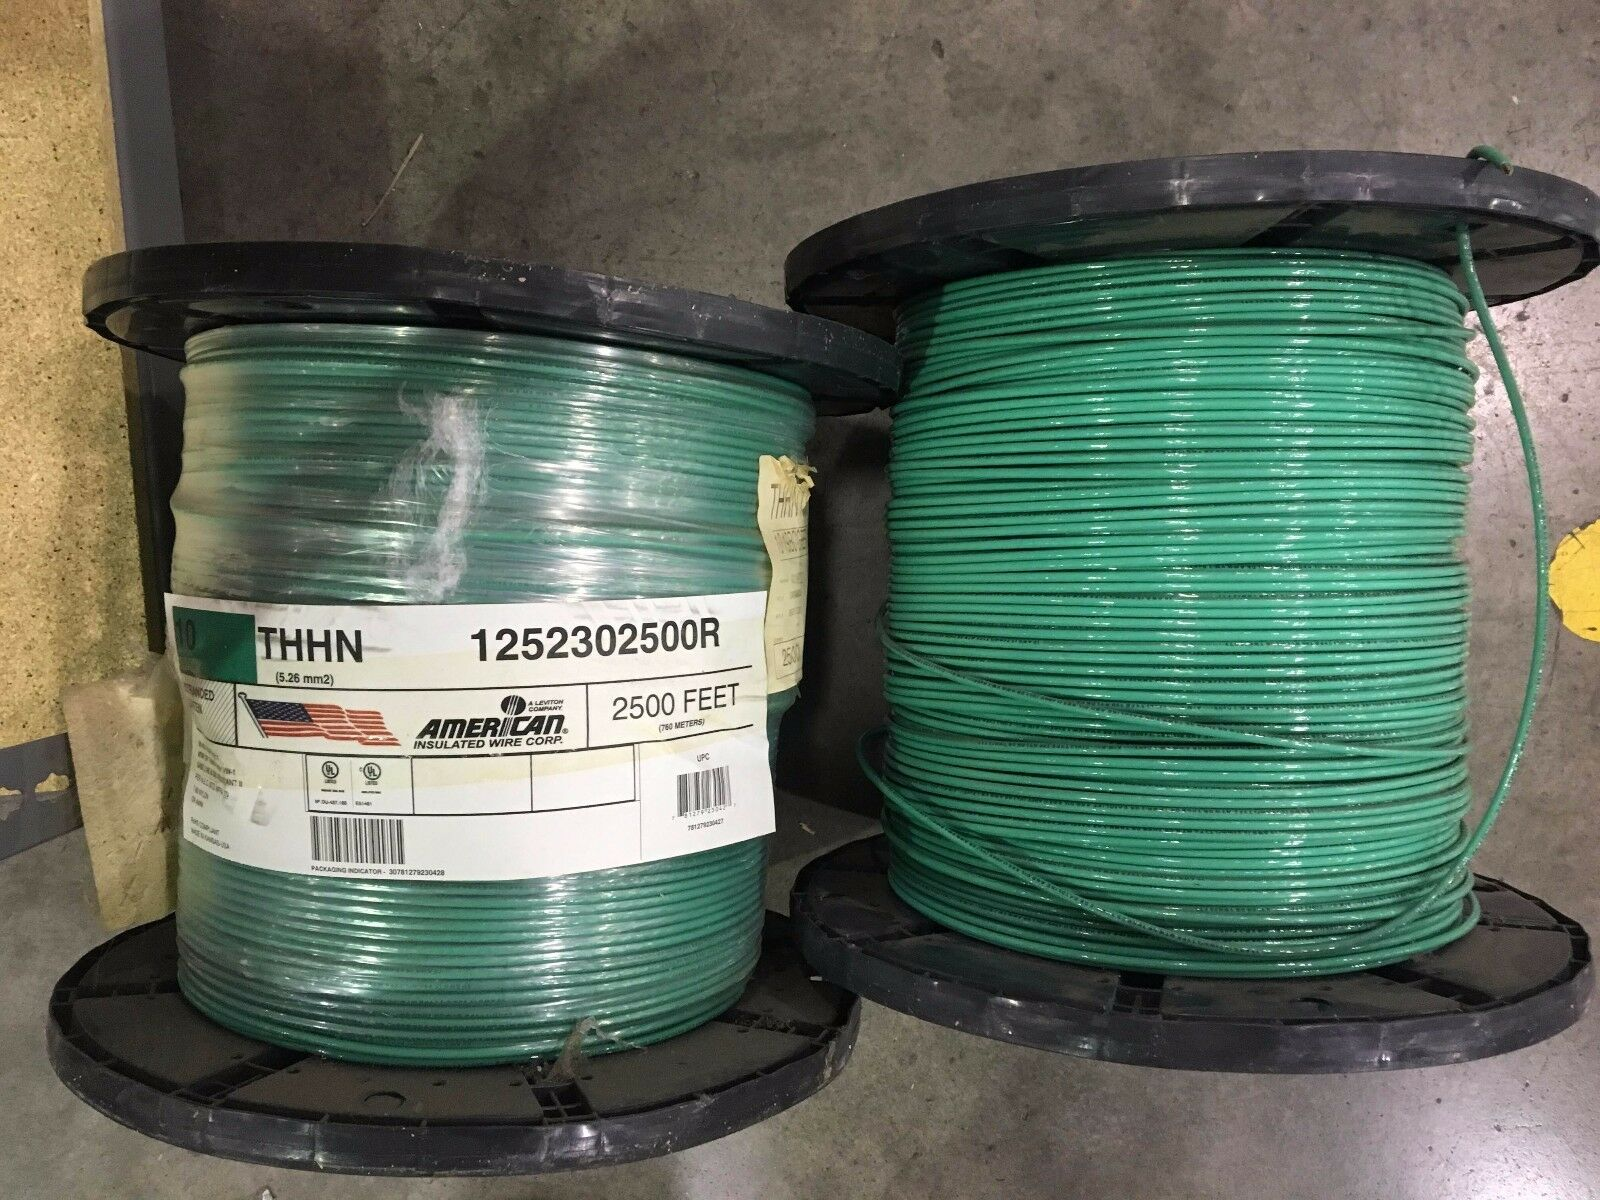 10 Foot Ft 10awg Thhn Green Ul Listed Stranded Copper 600v Wire Electrical Cable Gauge 14 2 Romex Simpull Picture 1 Of 3